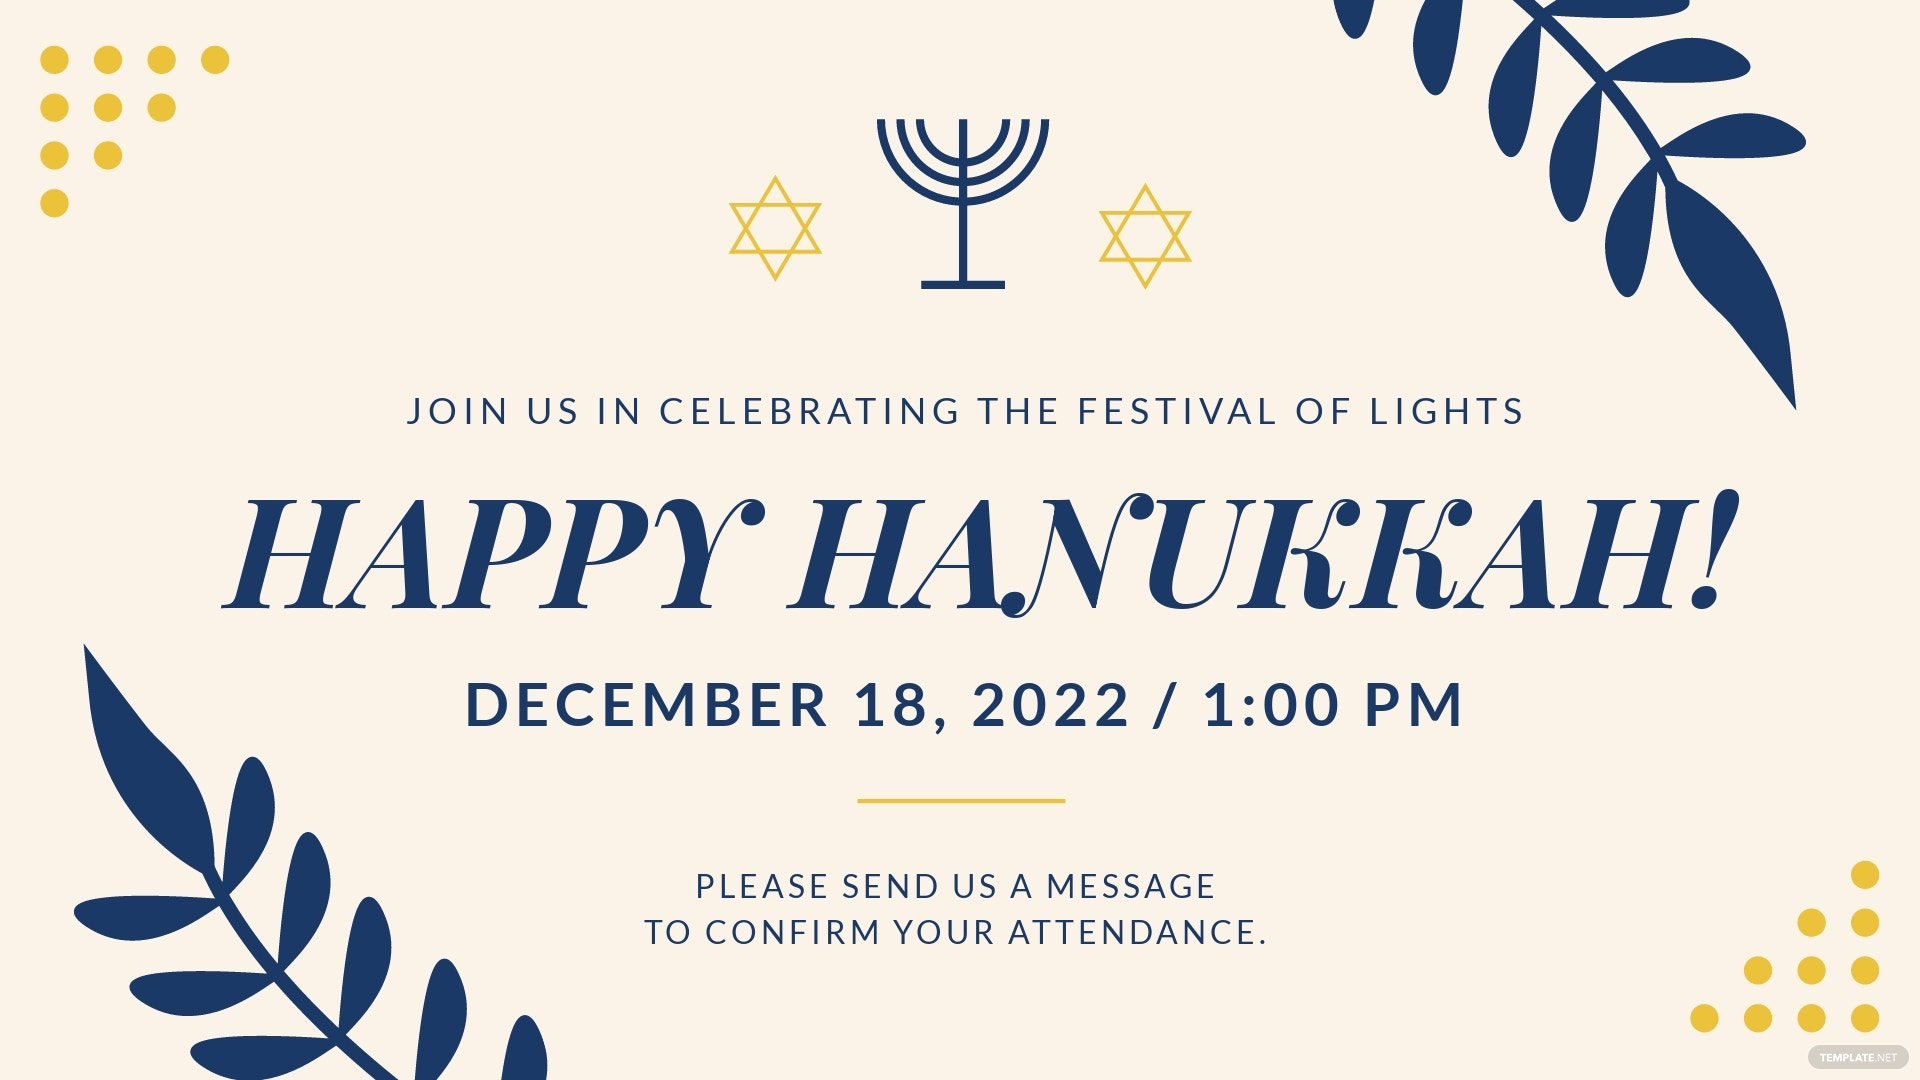 Hanukkah Party Facebook Event Cover Template